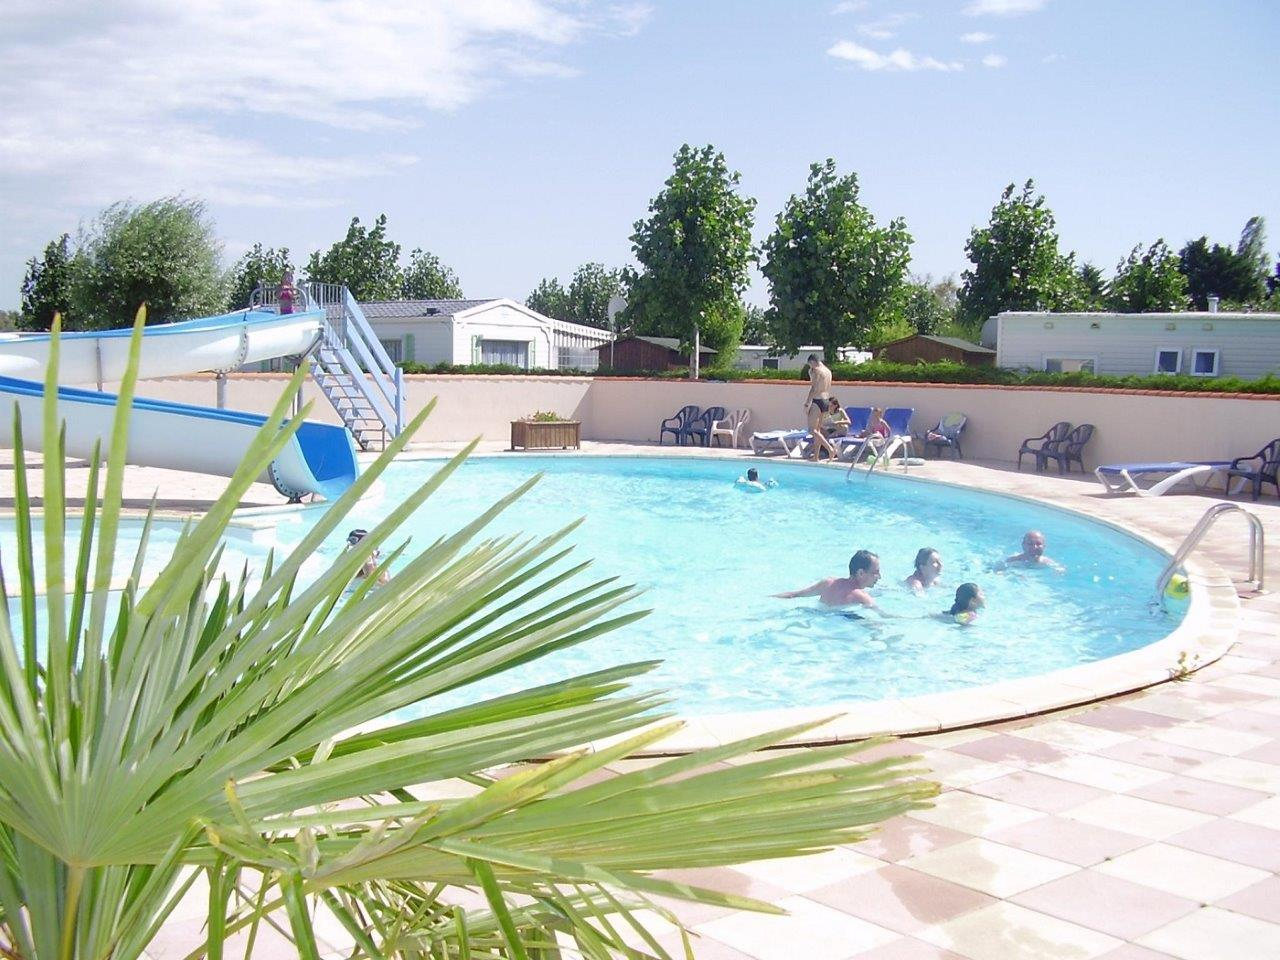 piscine avec toboggan au camping les aliz s saint hilaire de riez. Black Bedroom Furniture Sets. Home Design Ideas